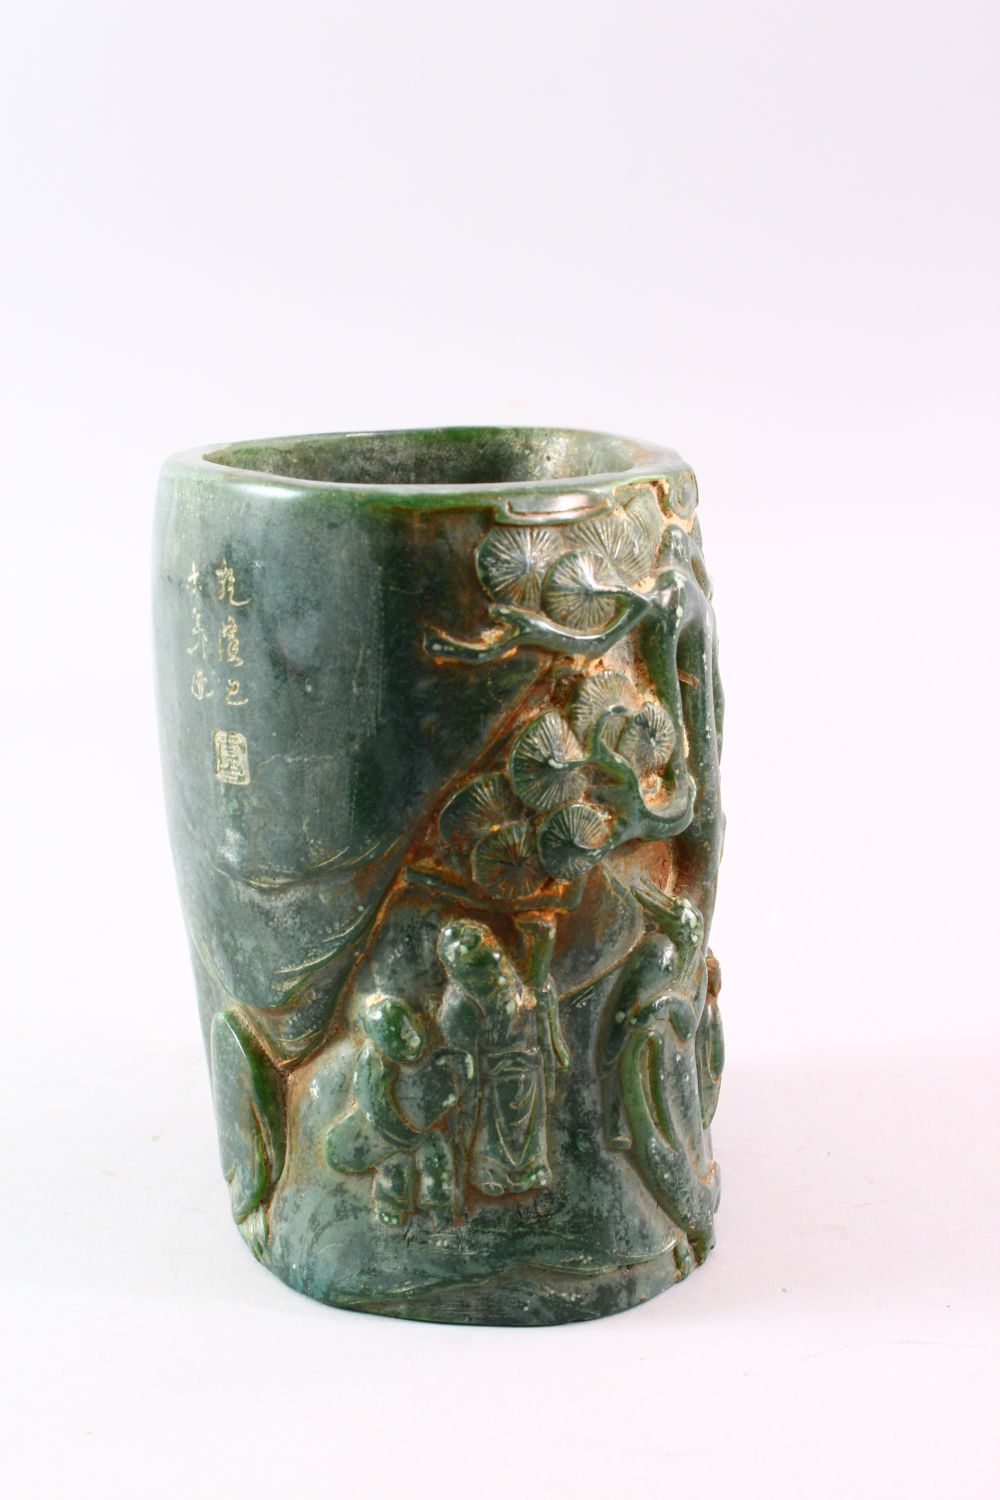 A CHINESE GREEN HARDSTONE BRUSH POT, carved with figures and trees, calligraphy, 15.5cm high. - Image 2 of 7